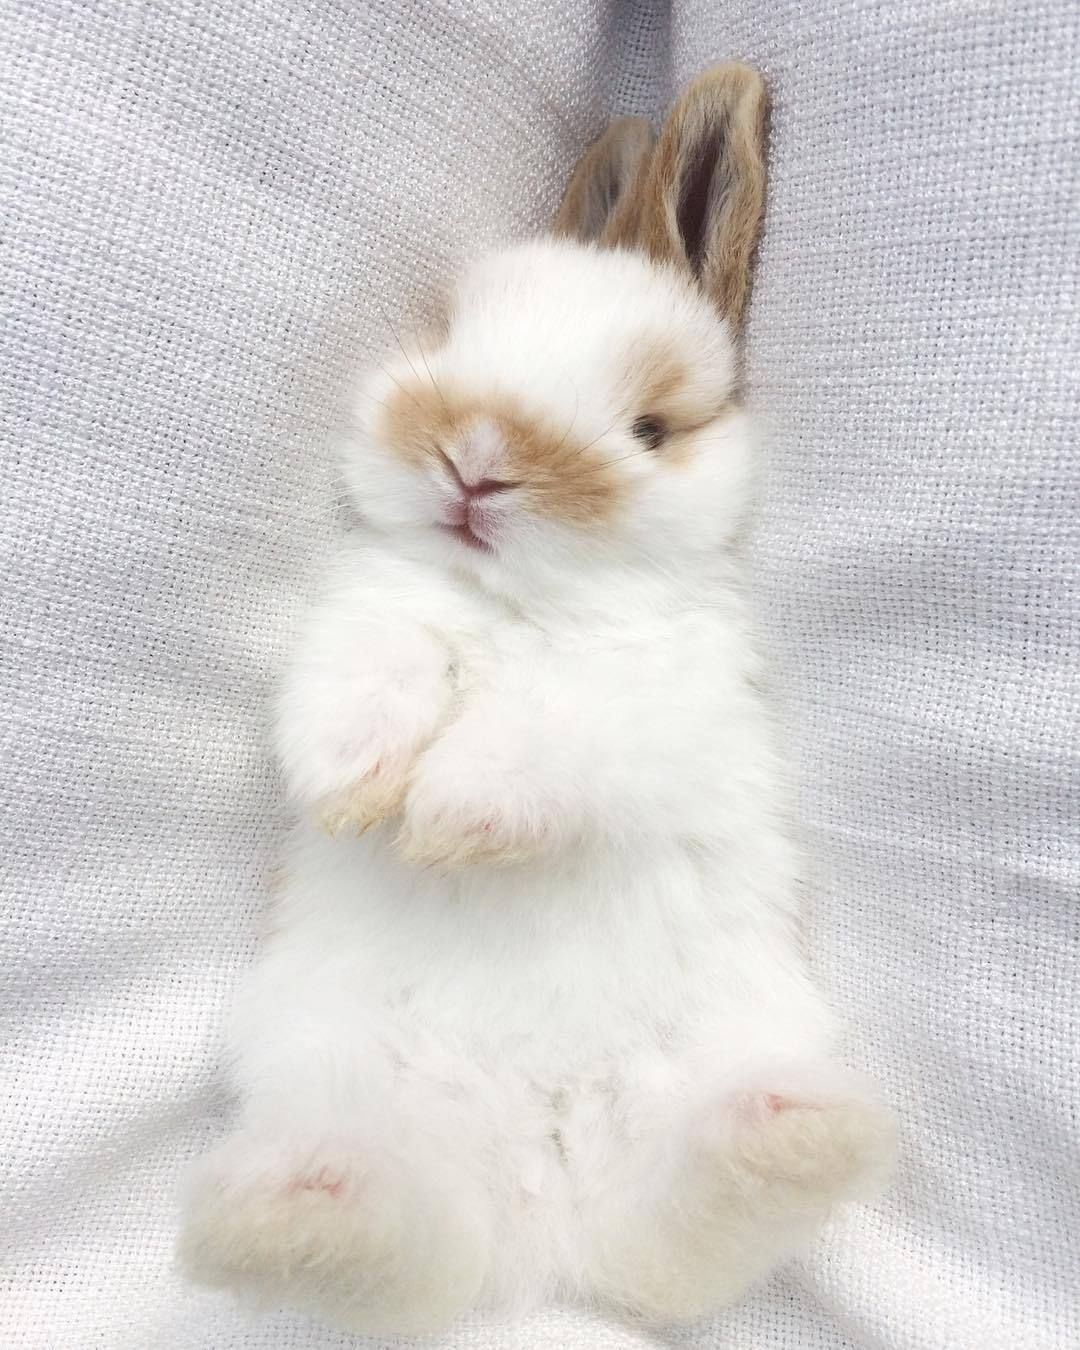 Adorable Bunnies With Images Cute Little Animals